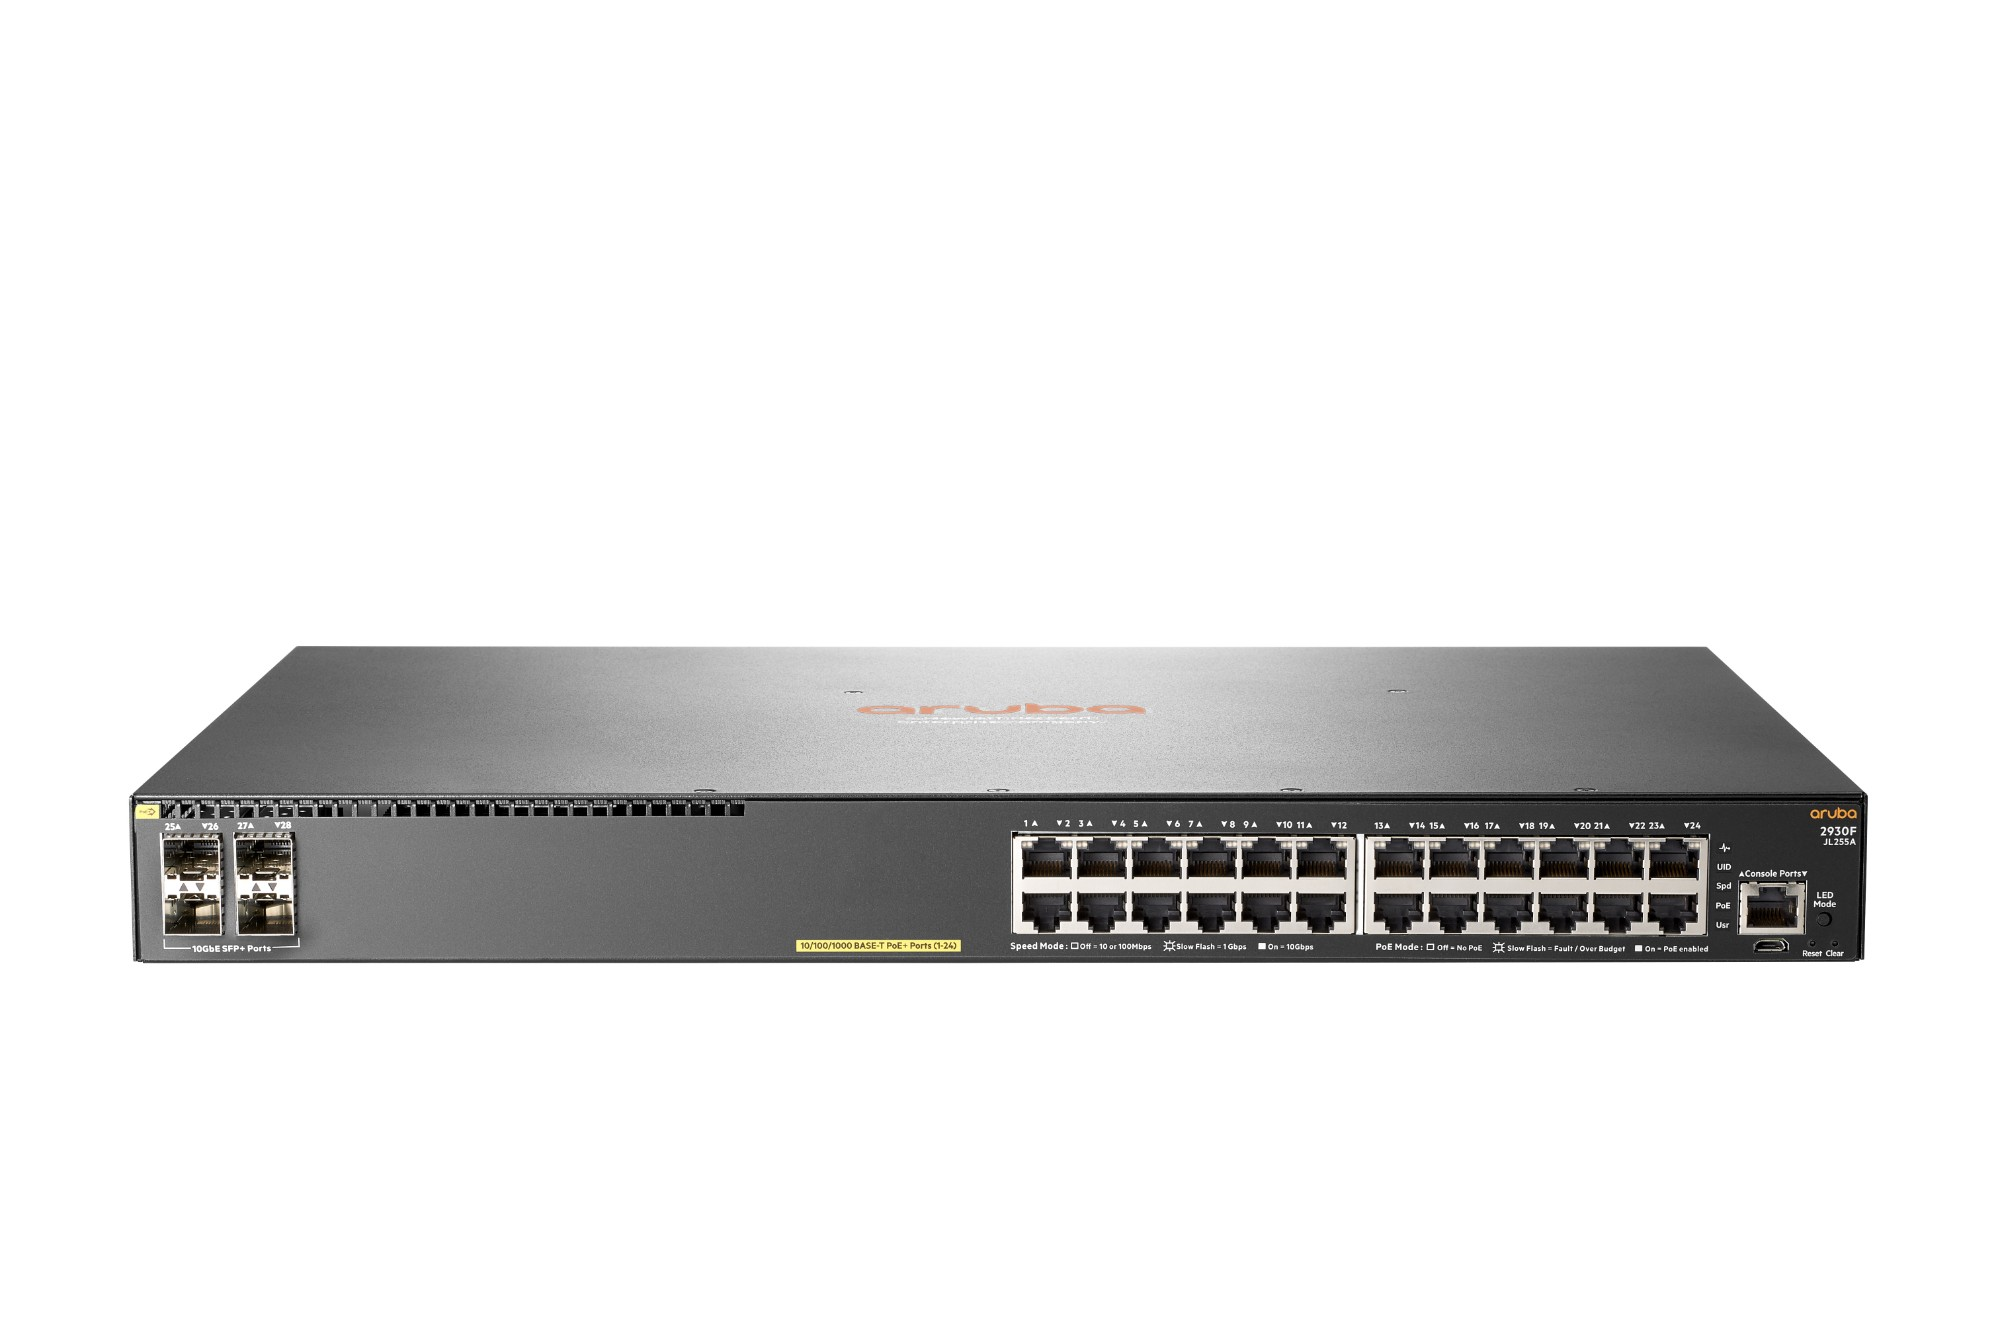 Hewlett Packard Enterprise Aruba 2930F 24G PoE+ 4SFP+ Managed L3 Gigabit Ethernet (10/100/1000) Power over Ethernet (PoE) 1U Grey